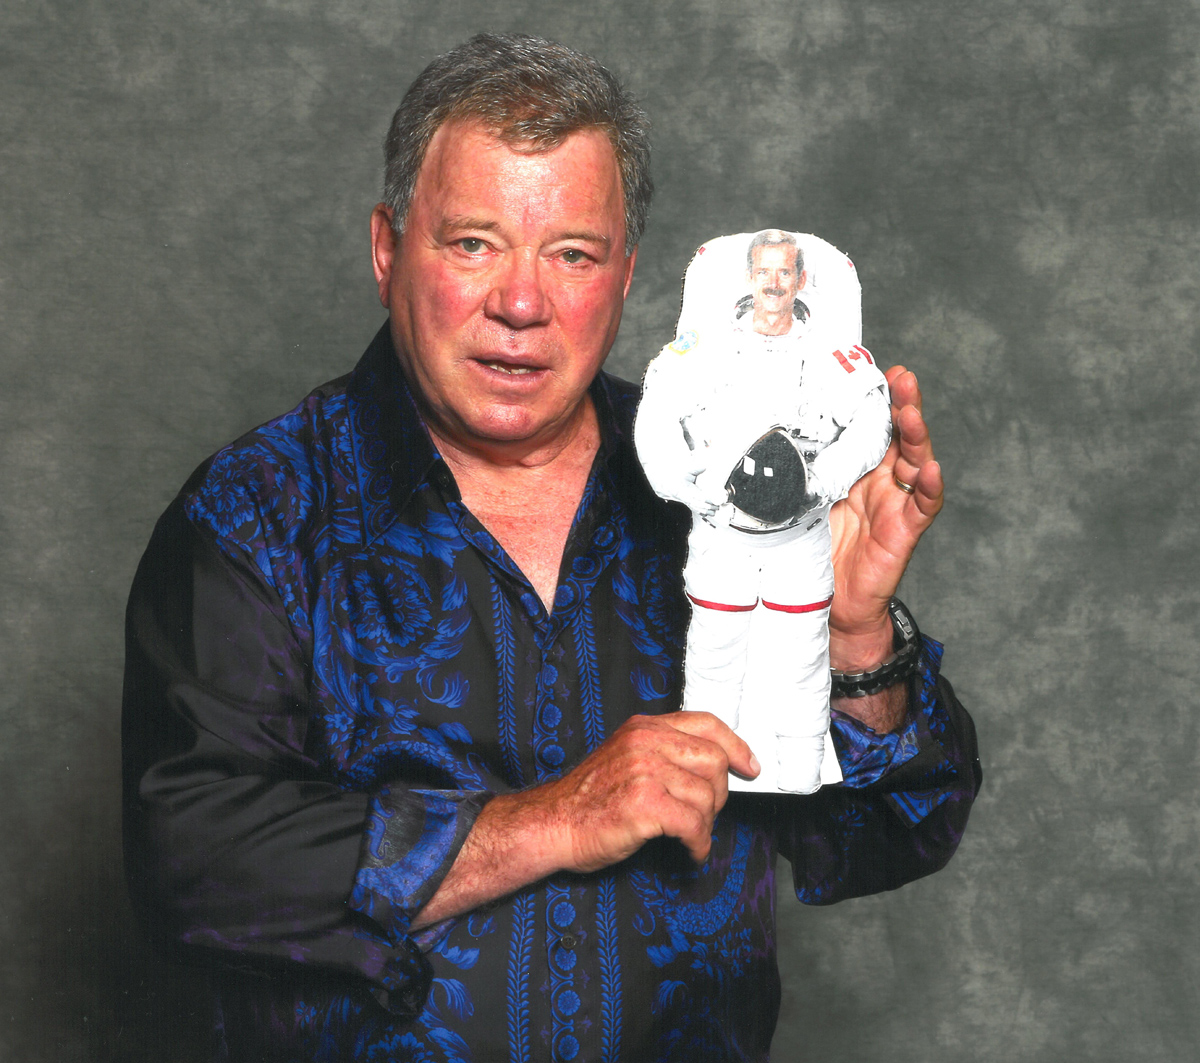 William Shatner with Image of Canadian Astronaut Chris Hadfield